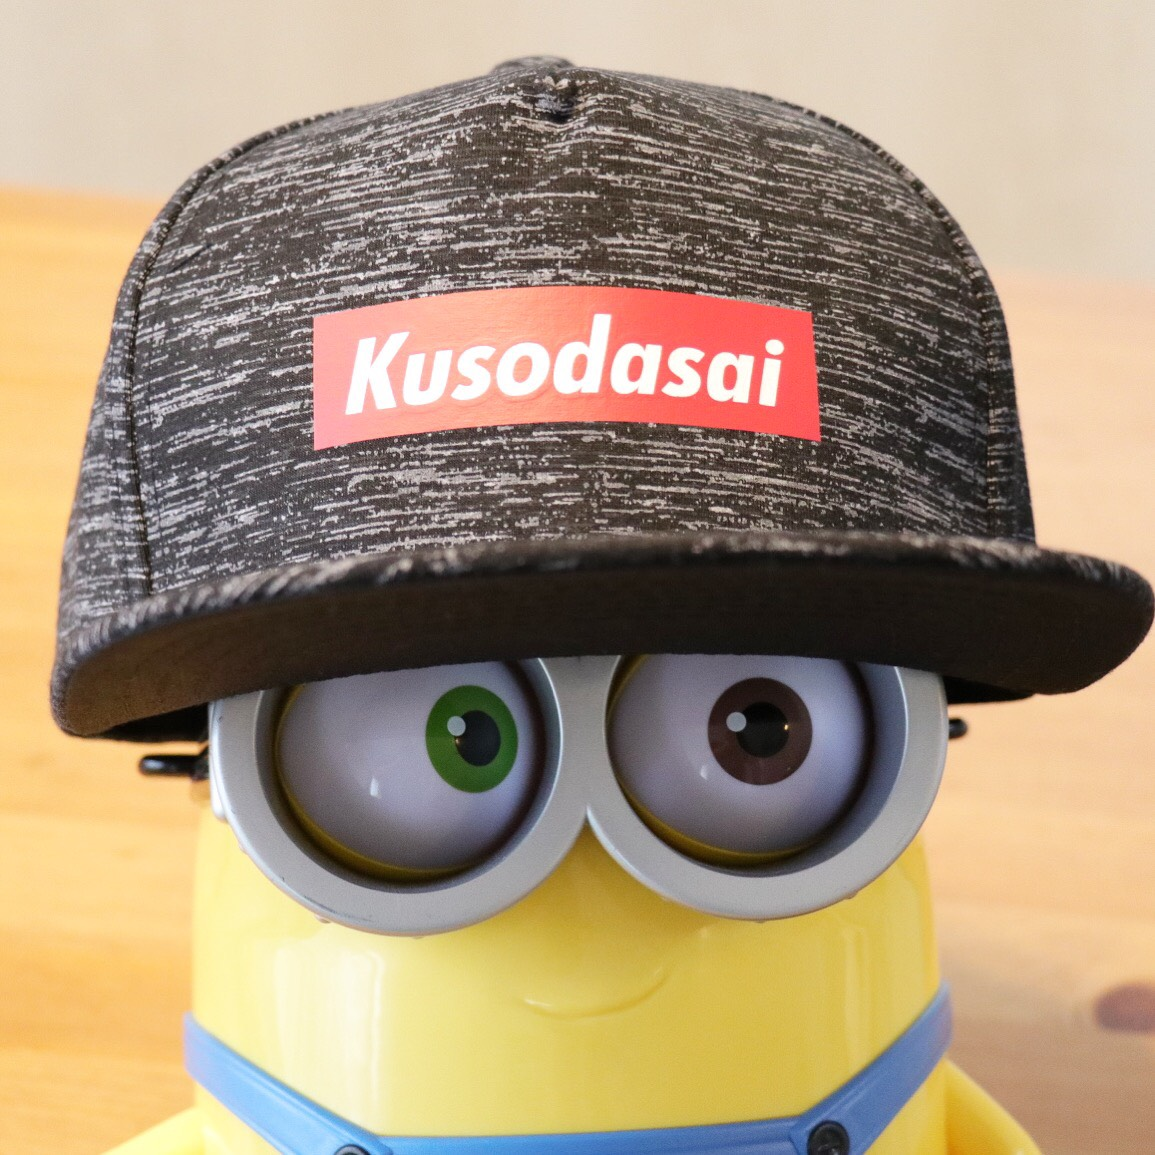 use-cap-001-kusodasai-mbk